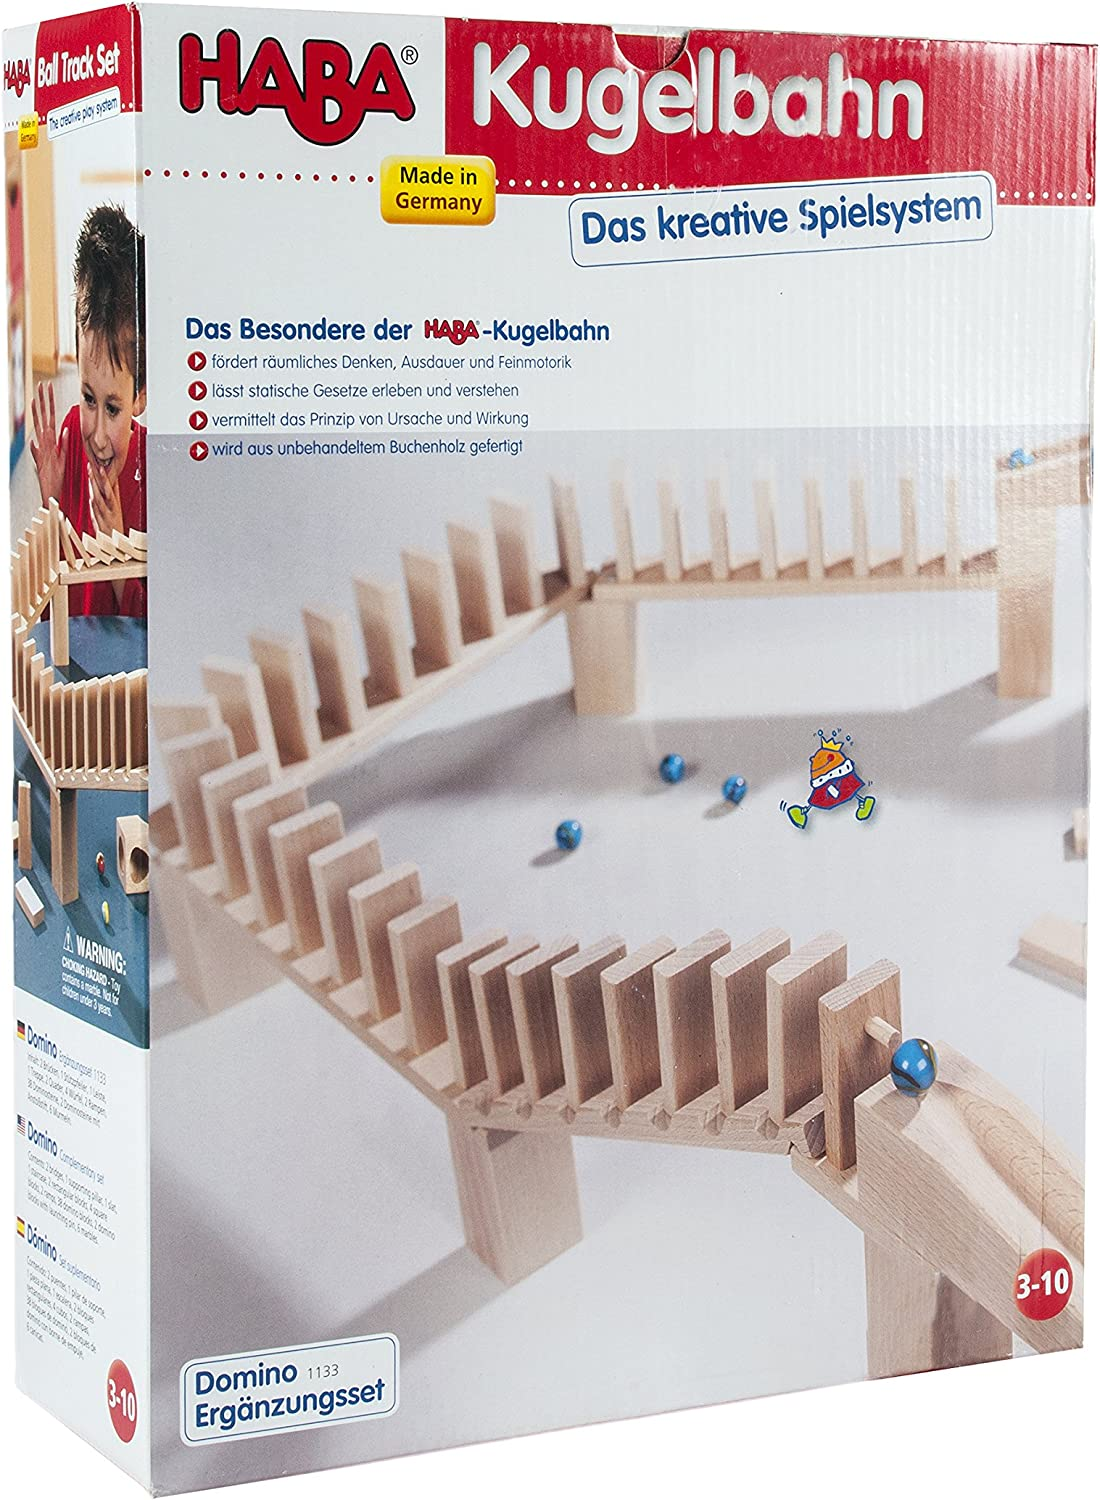 B0002HYFFC HABA Domino Bridge Set - Marble Ball Track 39 Piece Accessory Set (Made in Germany) 91KLpK7MpfL.SL1500_